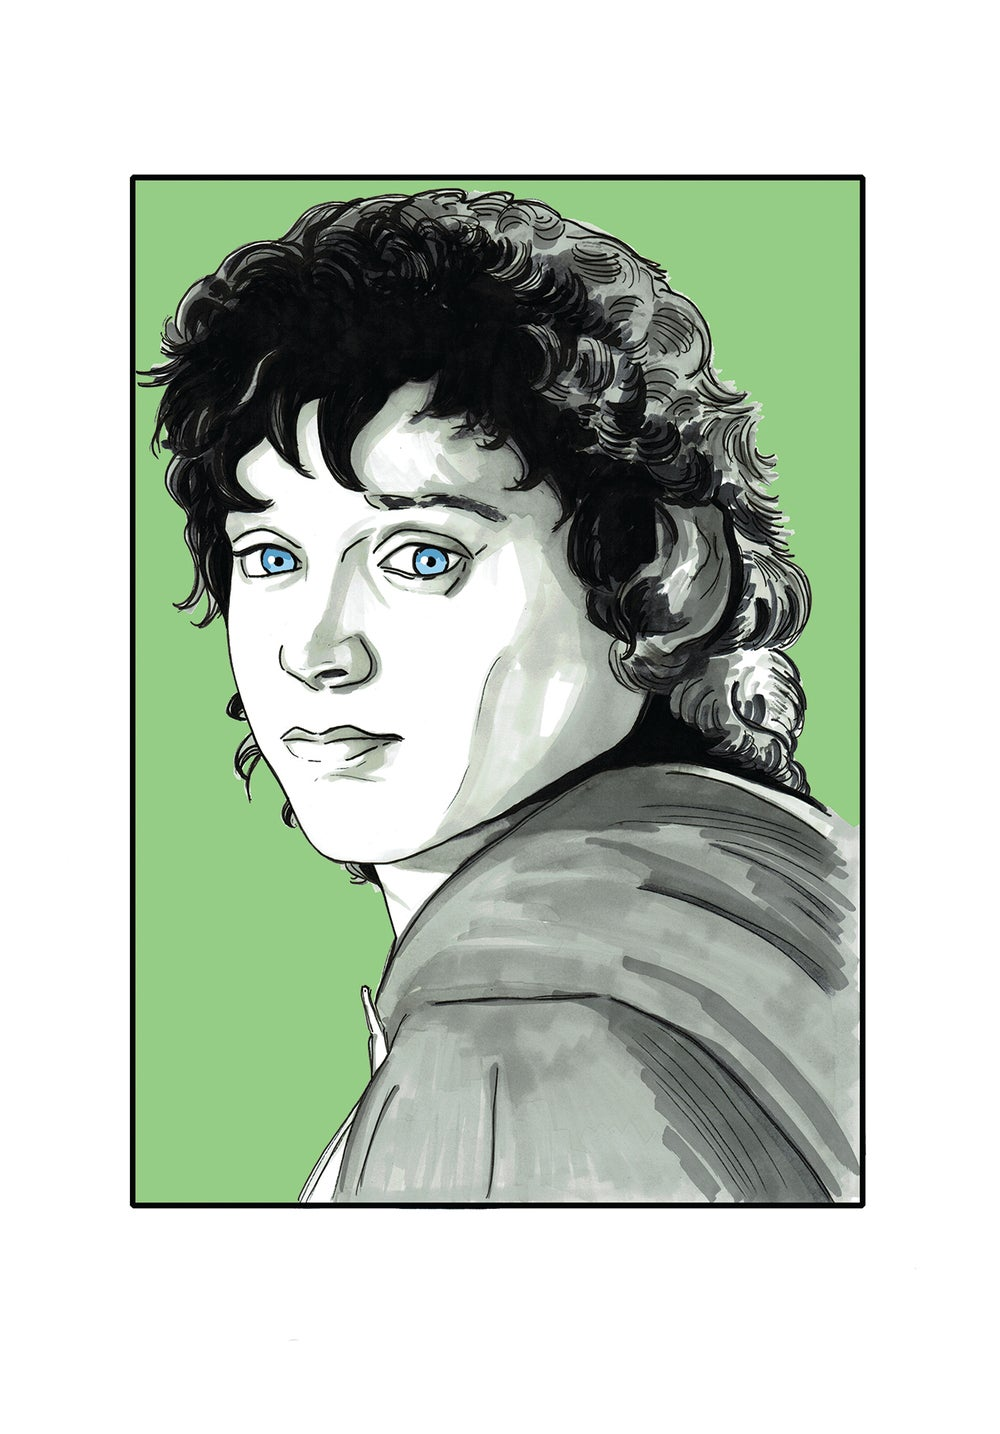 Image of Lord Of The Rings 'Frodo' A3 Hand Drawn Comic Illustration Signed A3 Print